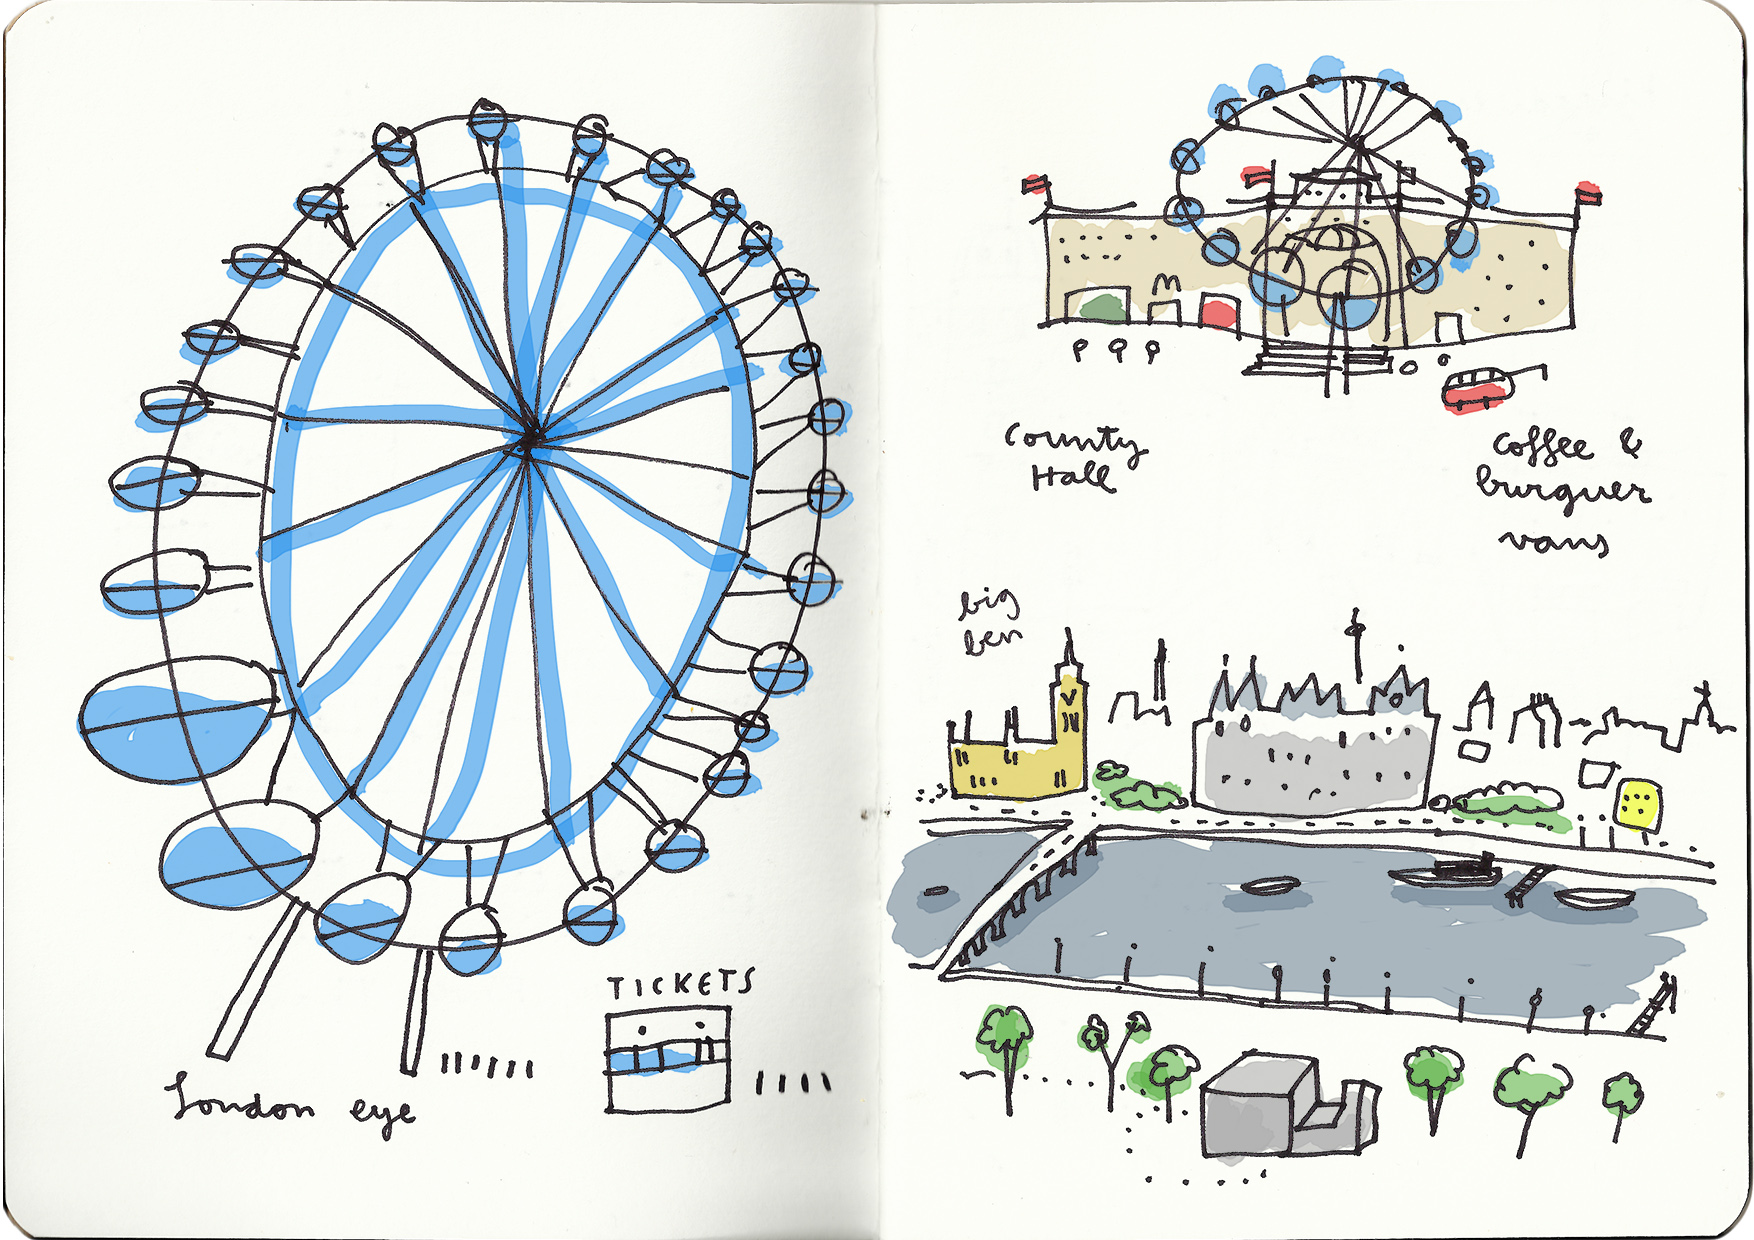 1754x1240 London An Artist's Year (I) London Eye, Illustrations And Croquis